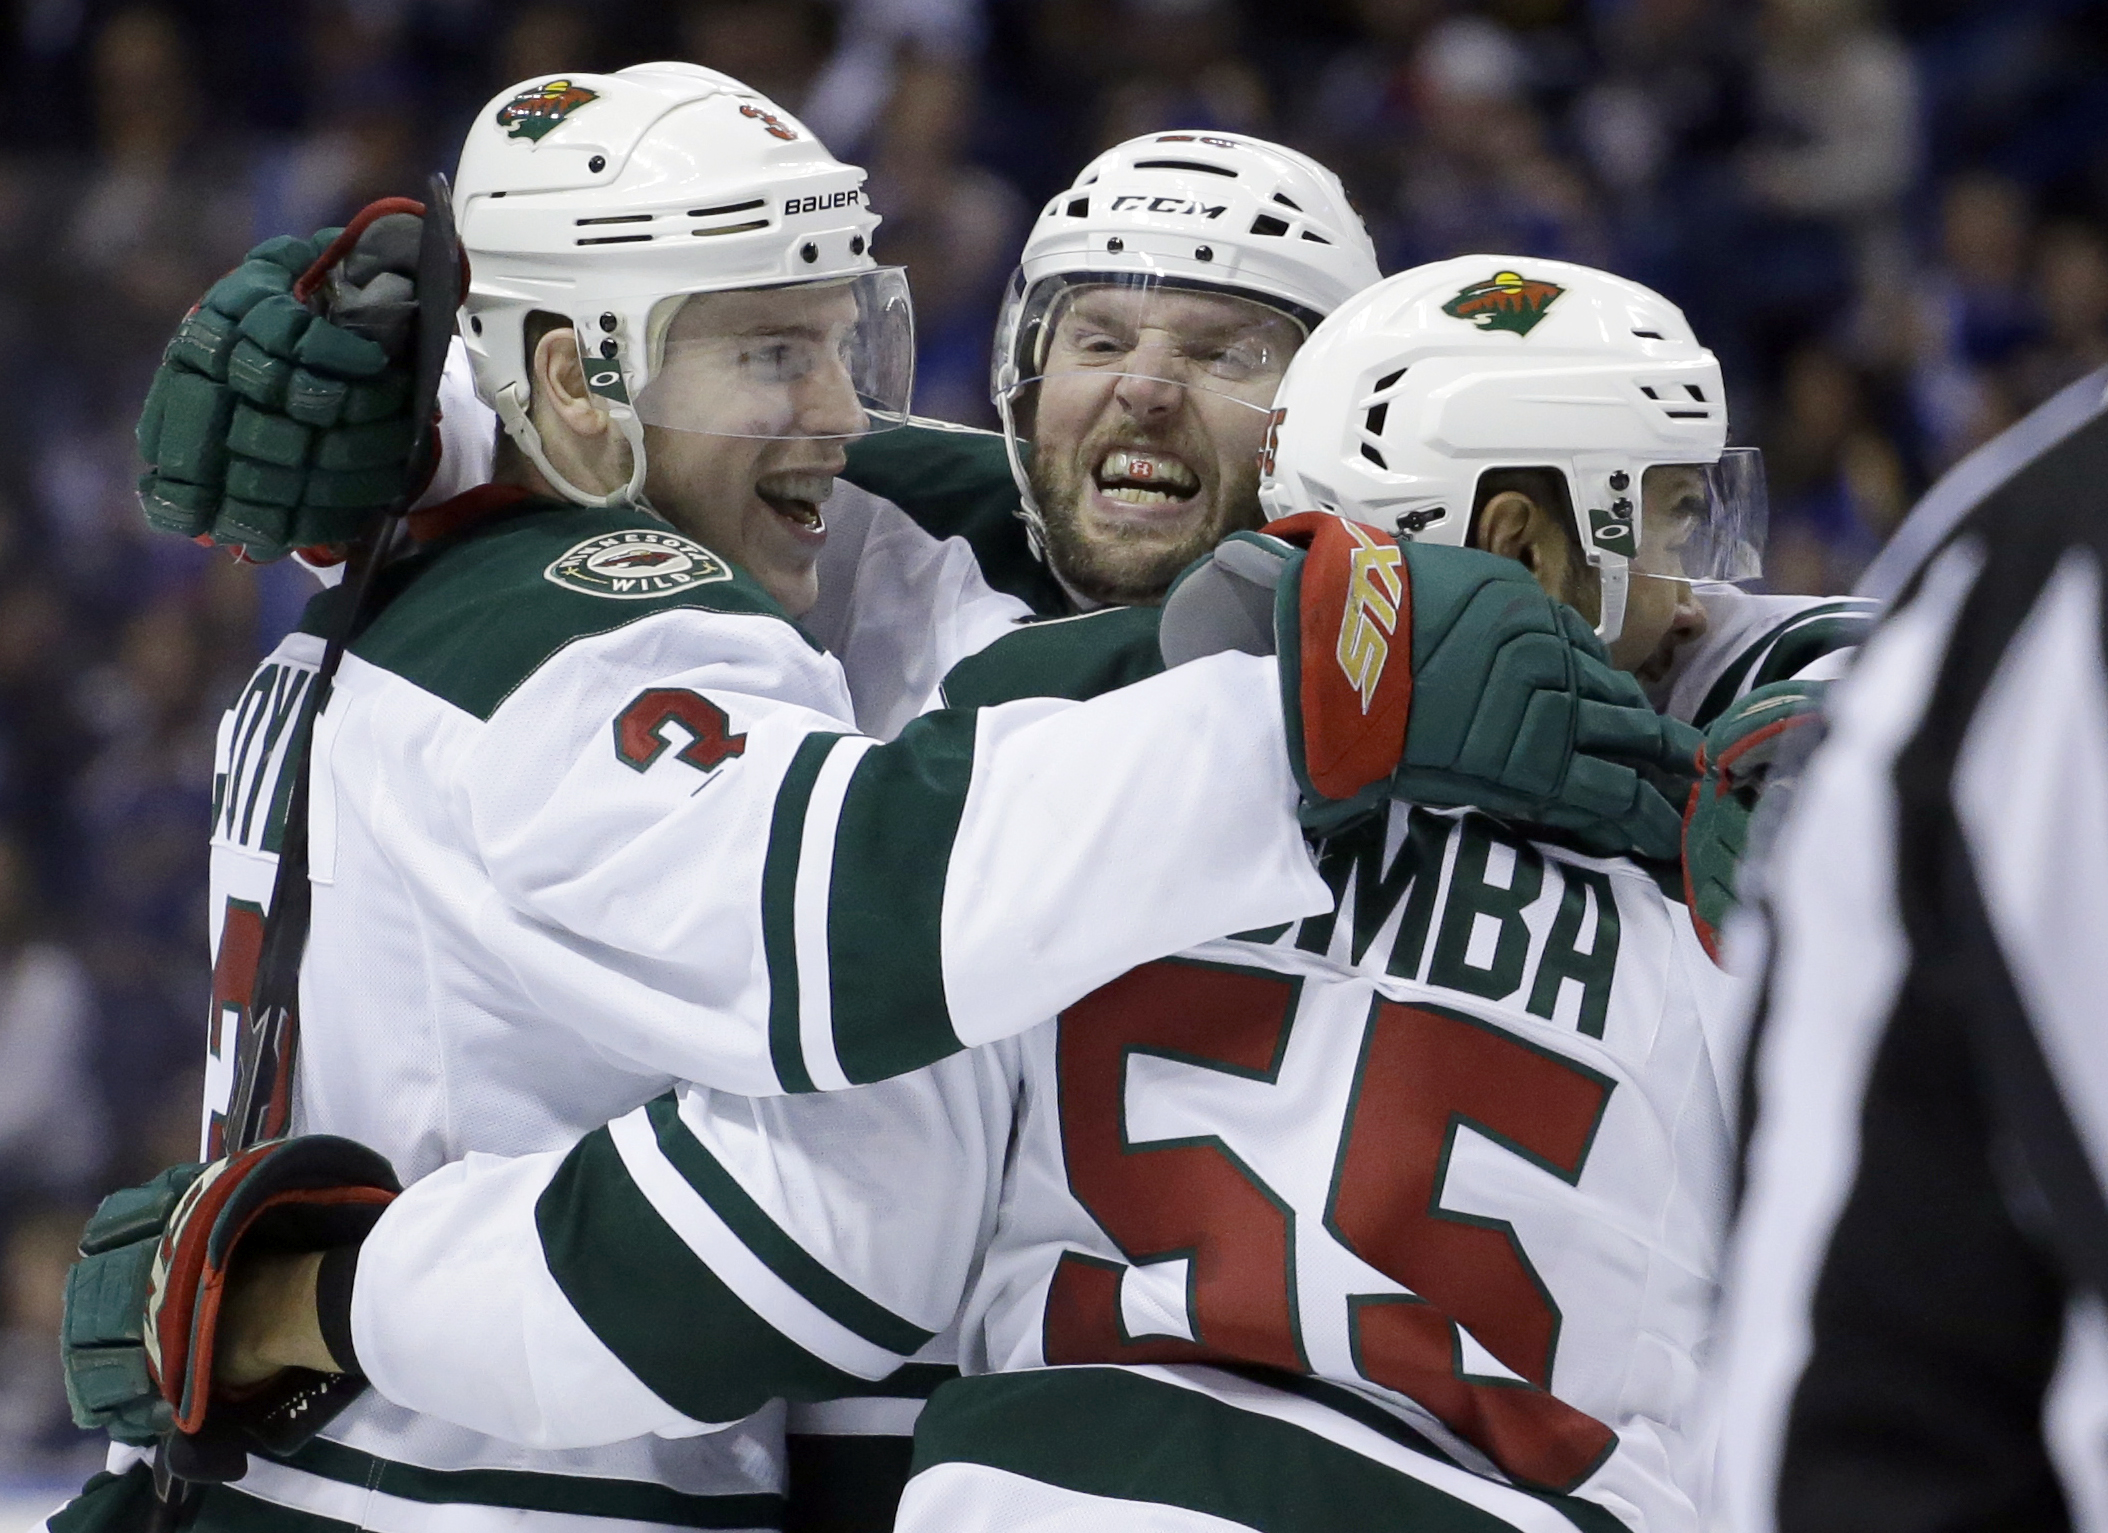 Minnesota Wild's Charlie Coyle, left, is congratulated by teammates Thomas Vanek, of Austria, and Matt Dumba, right, after scoring during the third period in Game 5 of an NHL hockey first-round playoff series against the St. Louis Blues, Friday, April 24,